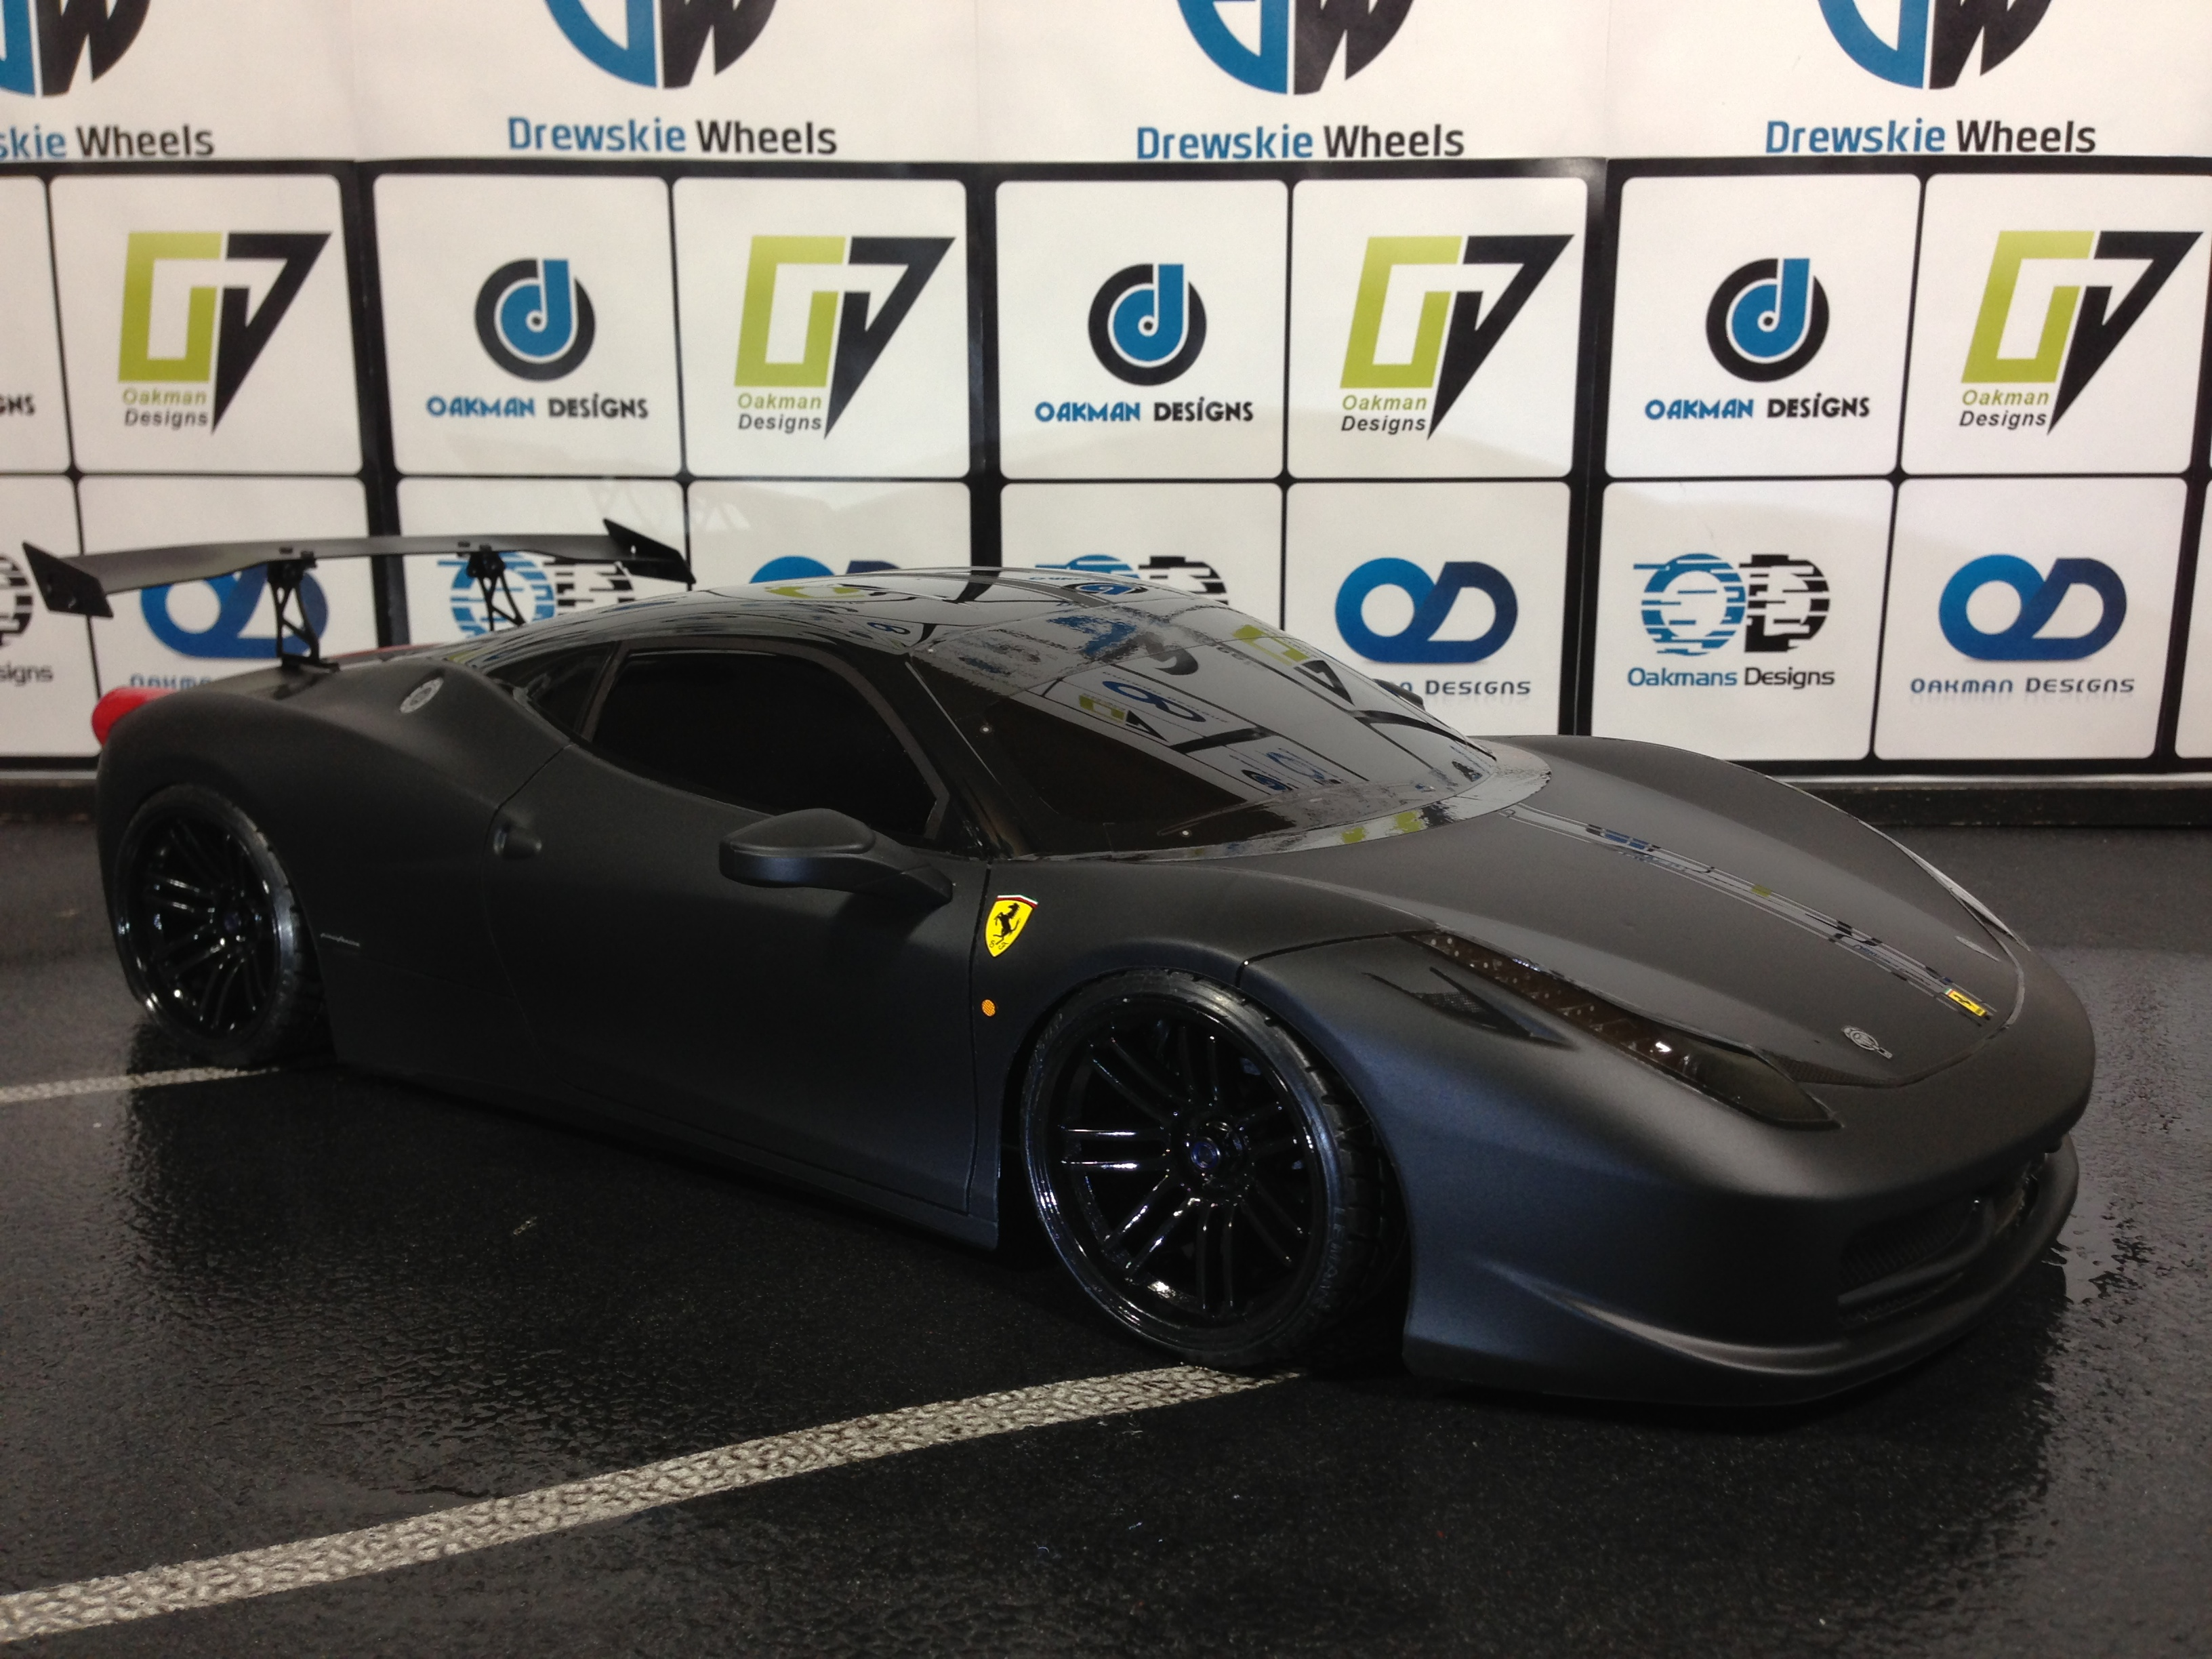 Ferrari 458 Challenger Oak Man Designs